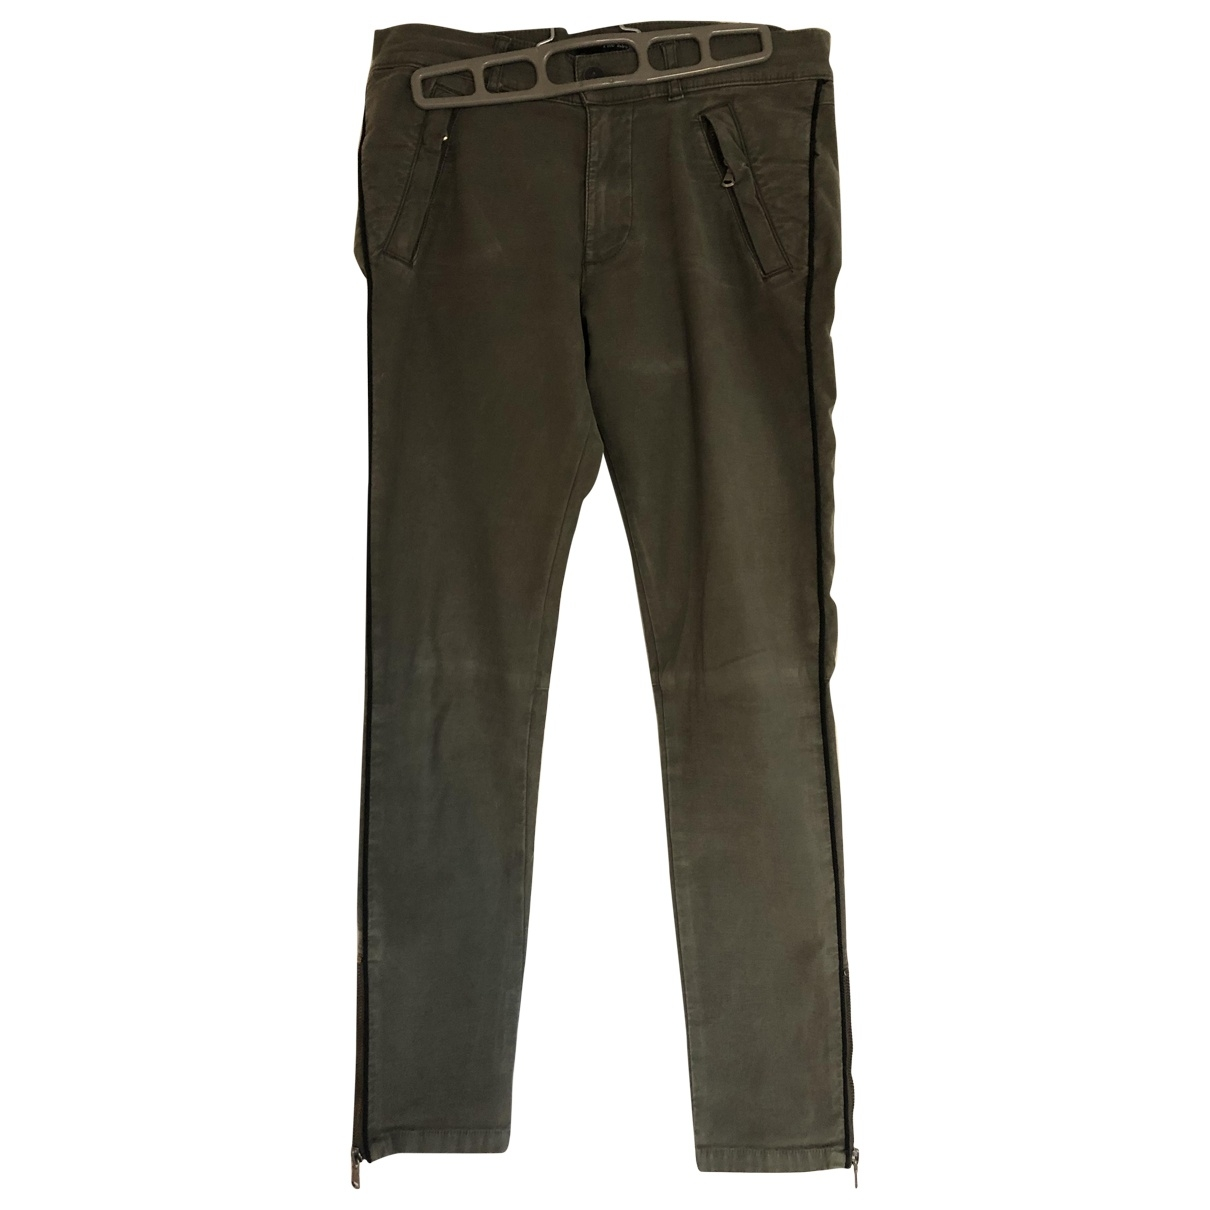 The Kooples \N Khaki Cotton Trousers for Women S International